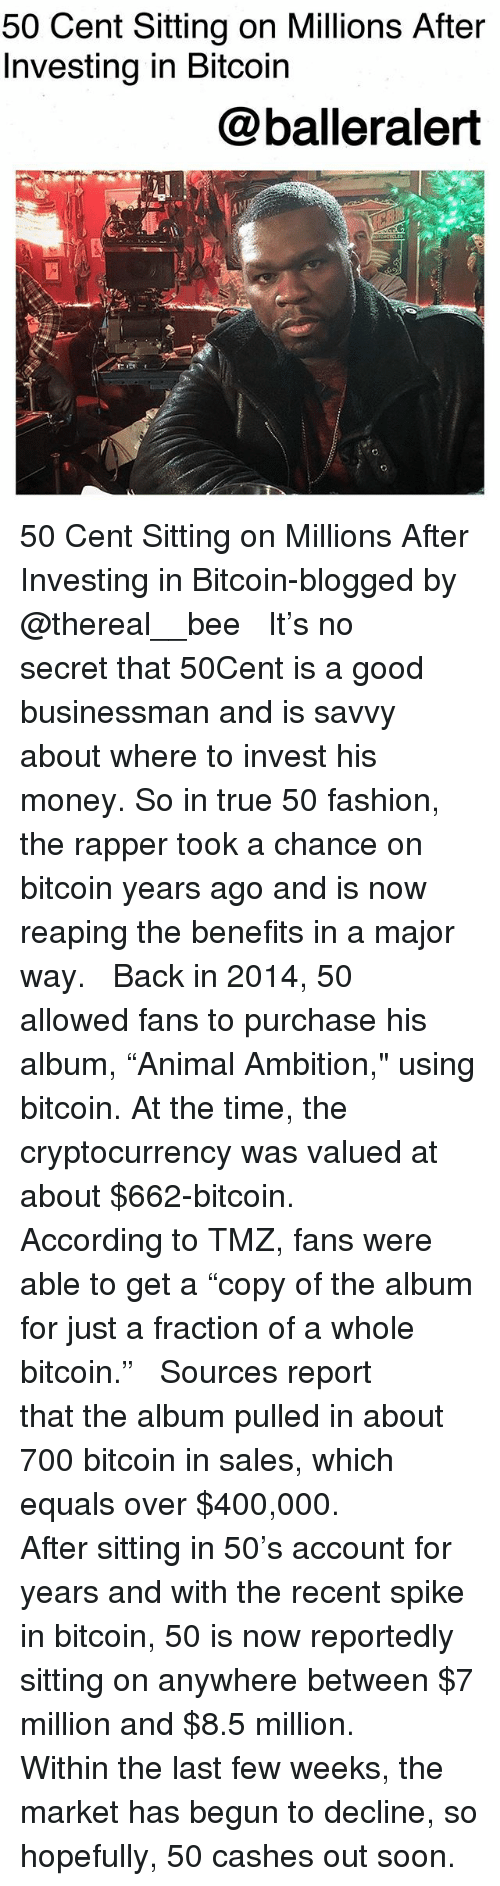 """50 Cent, Fashion, and Memes: 50 Cent Sitting on Millions After  Investing in Bitcoin  @balleralert 50 Cent Sitting on Millions After Investing in Bitcoin-blogged by @thereal__bee ⠀⠀⠀⠀⠀⠀⠀ ⠀⠀⠀⠀ It's no secret that 50Cent is a good businessman and is savvy about where to invest his money. So in true 50 fashion, the rapper took a chance on bitcoin years ago and is now reaping the benefits in a major way. ⠀⠀⠀⠀⠀⠀⠀ ⠀⠀⠀⠀ Back in 2014, 50 allowed fans to purchase his album, """"Animal Ambition,"""" using bitcoin. At the time, the cryptocurrency was valued at about $662-bitcoin. ⠀⠀⠀⠀⠀⠀⠀ ⠀⠀⠀⠀ According to TMZ, fans were able to get a """"copy of the album for just a fraction of a whole bitcoin."""" ⠀⠀⠀⠀⠀⠀⠀ ⠀⠀⠀⠀ Sources report that the album pulled in about 700 bitcoin in sales, which equals over $400,000. ⠀⠀⠀⠀⠀⠀⠀ ⠀⠀⠀⠀ After sitting in 50's account for years and with the recent spike in bitcoin, 50 is now reportedly sitting on anywhere between $7 million and $8.5 million. ⠀⠀⠀⠀⠀⠀⠀ ⠀⠀⠀⠀ Within the last few weeks, the market has begun to decline, so hopefully, 50 cashes out soon."""